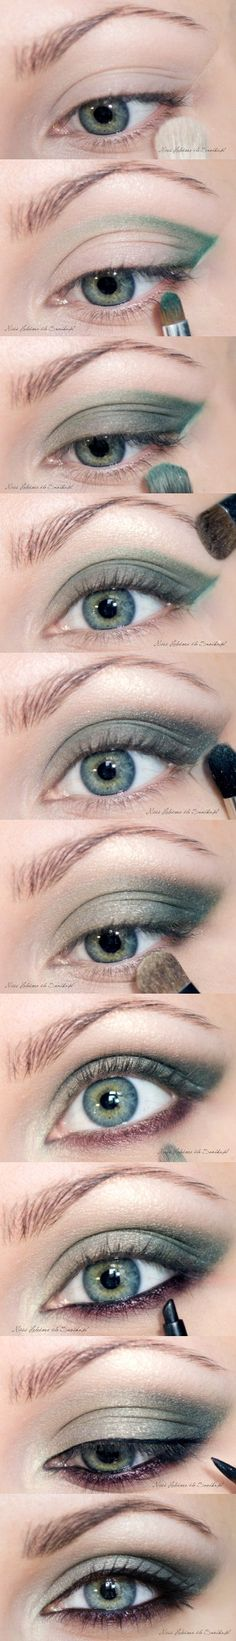 Emerald Smokey Eyes - Eye Make Up Tutorial